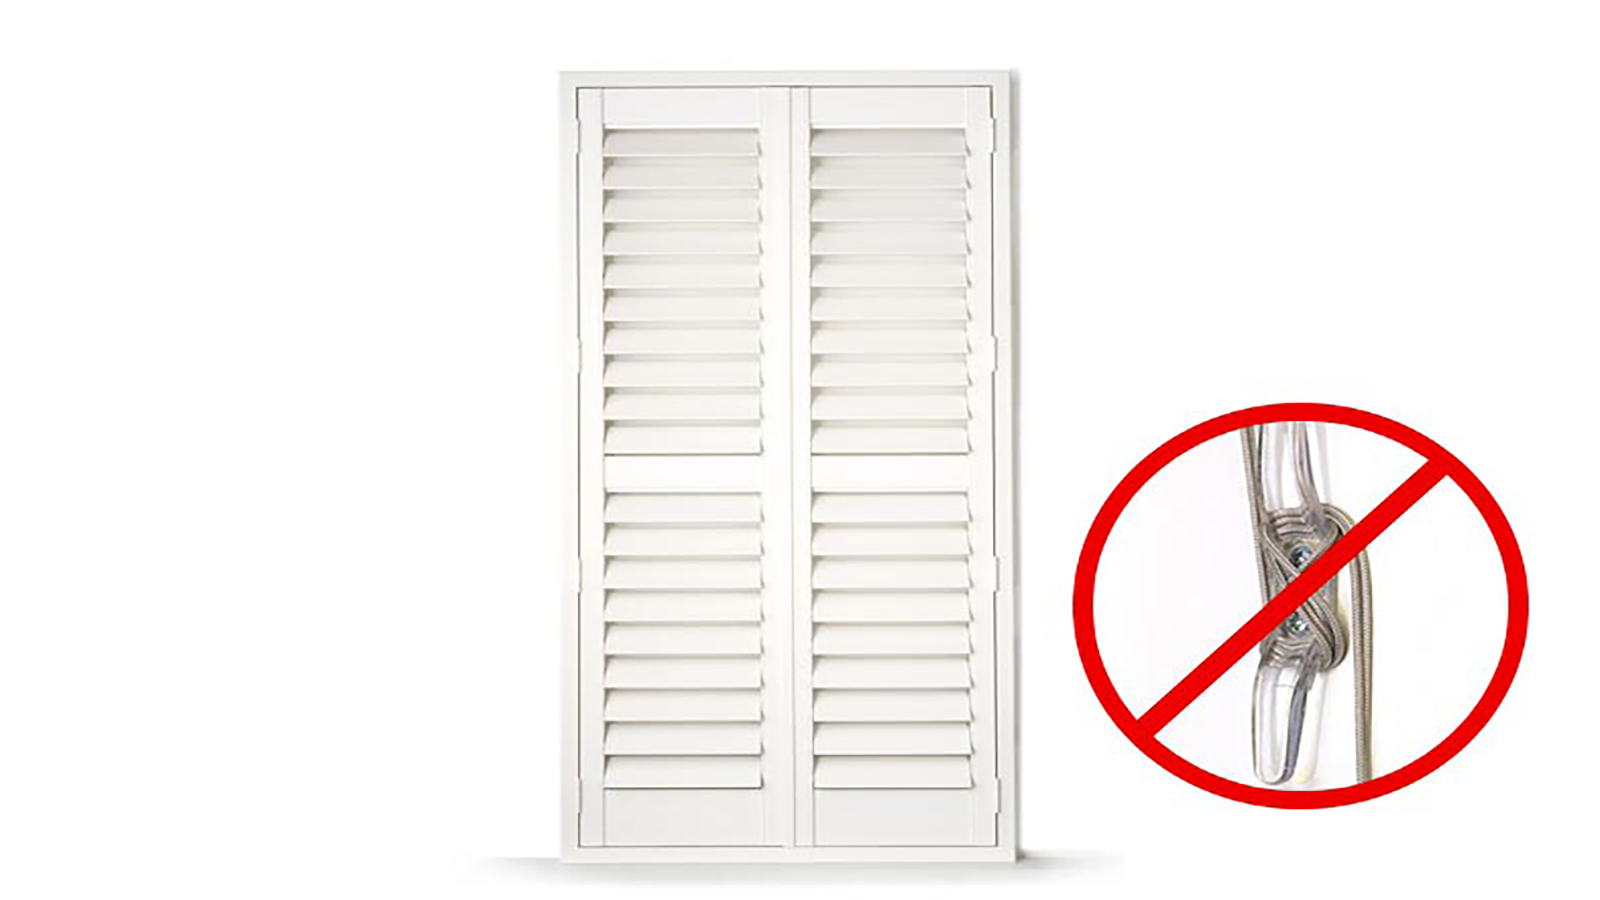 PVC Shutters with no cord